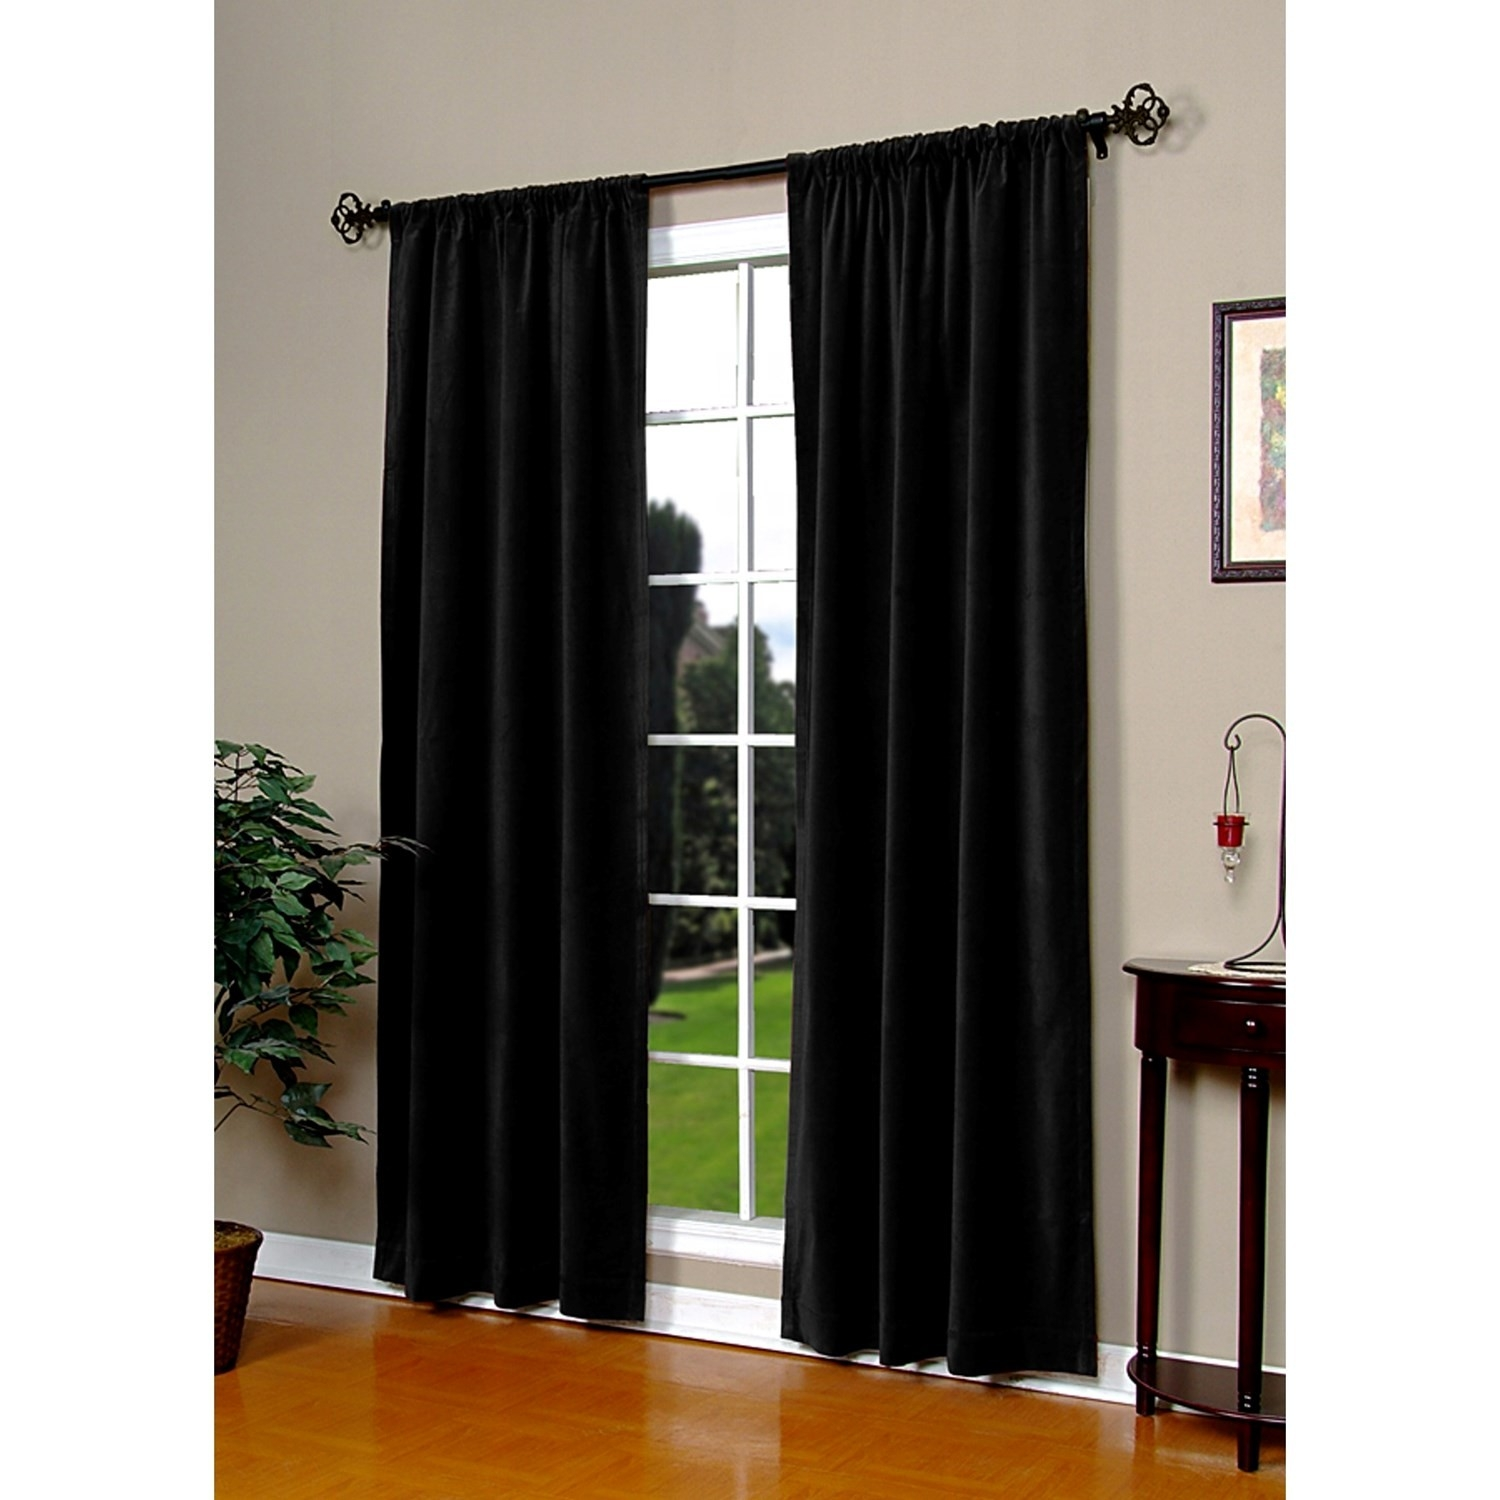 Stunning Velvet Door Curtain Ebay Door Panel Gold Velvet Curtain With Regard To Velvet Door Curtain (View 5 of 15)